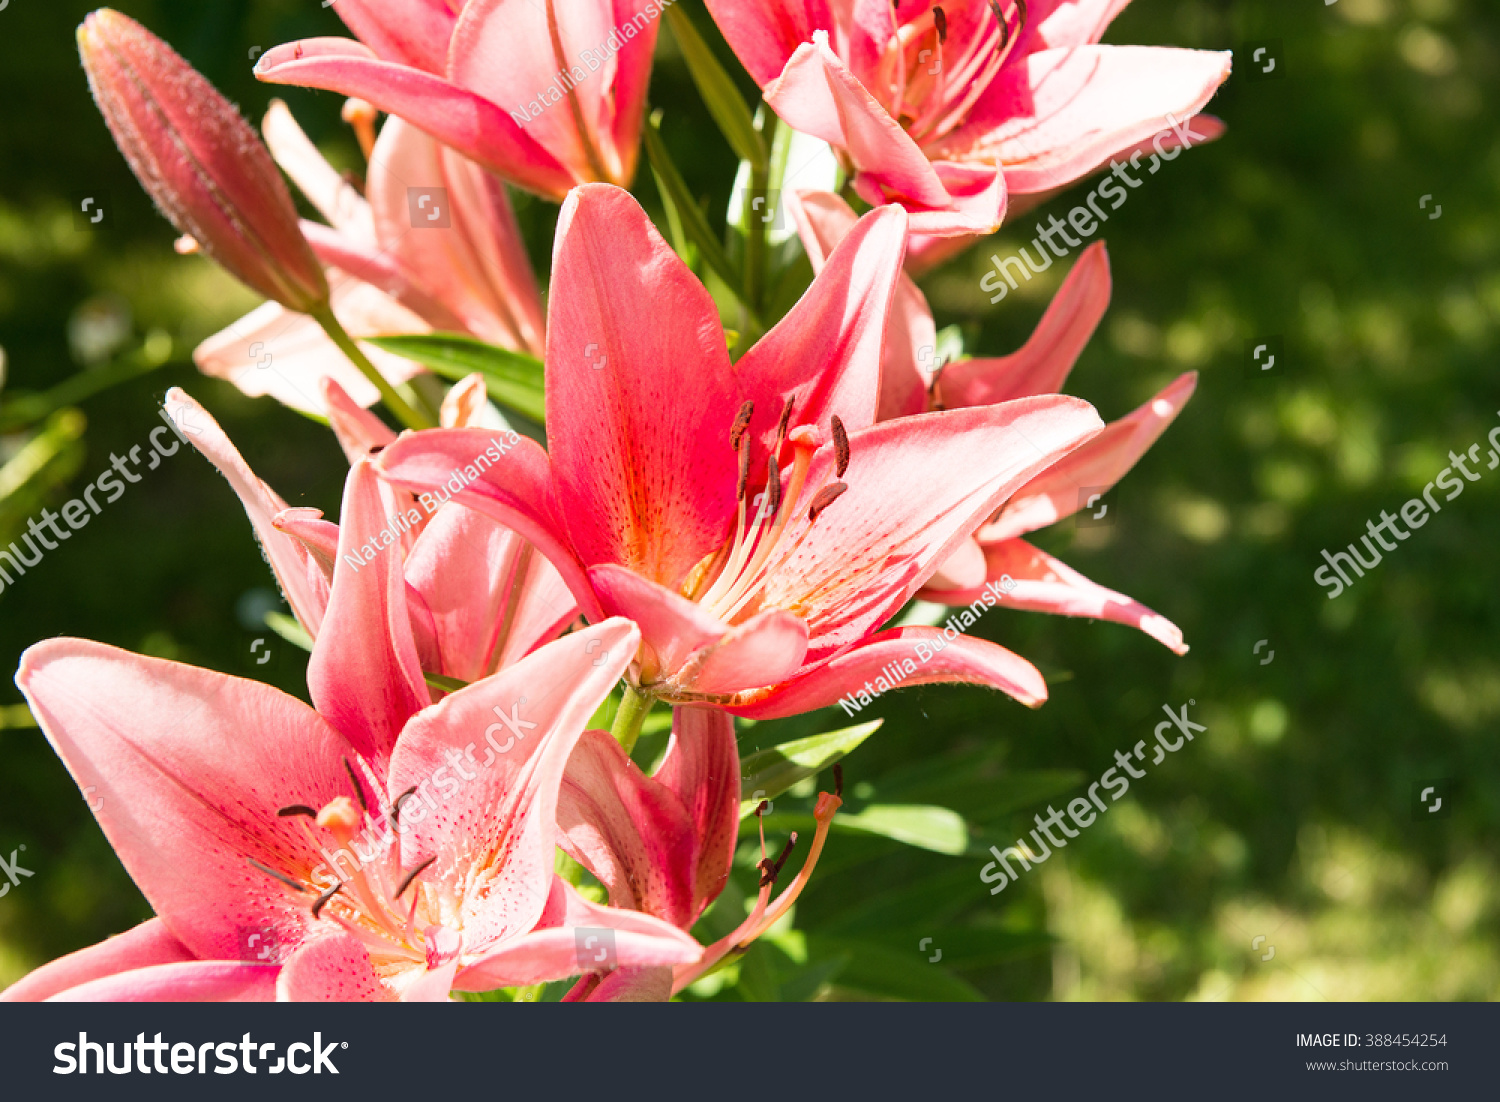 Royalty free lily at sunny summer day flowers in 388454254 stock lily at sunny summer day flowers in the garden common names for species in this genus include fairy lily rainflower zephyr lily magic lily stock photo izmirmasajfo